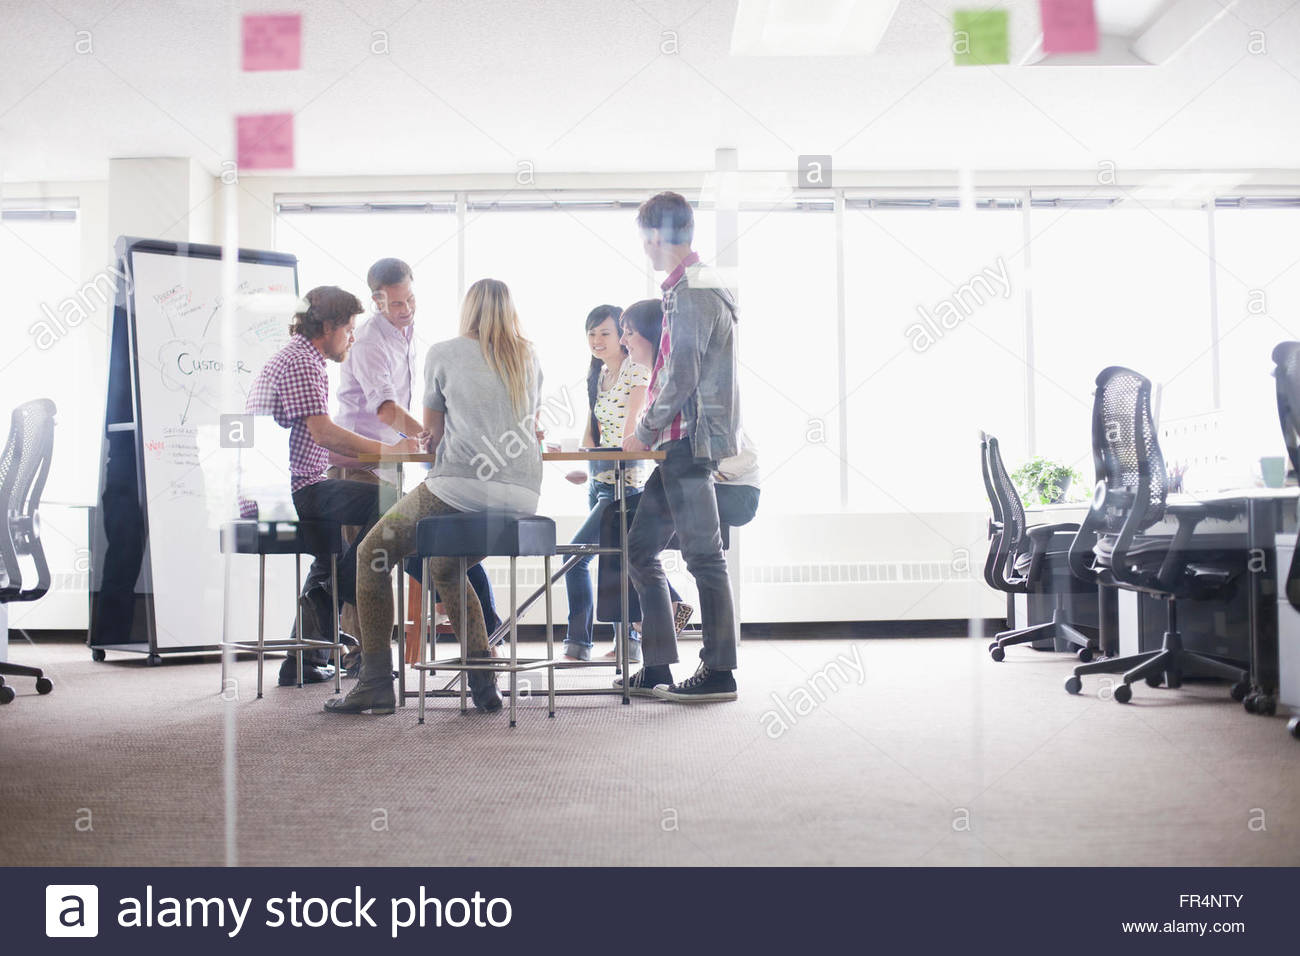 coworkers meeting in trendy business office - Stock Image